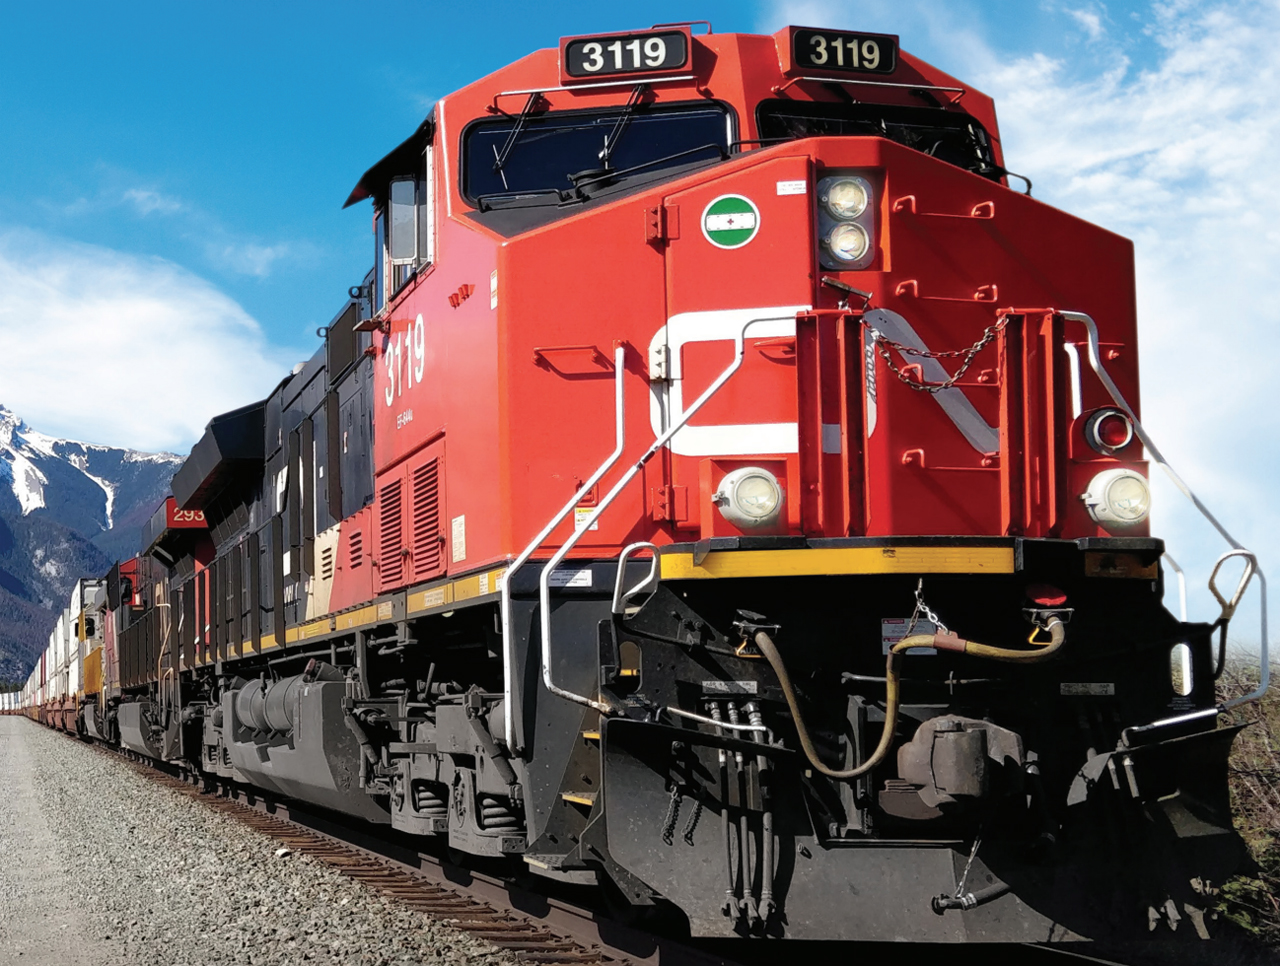 """""""As we look at the fourth quarter and beyond, we continue to see sequential improvements and momentum leading us to have a cautious optimism about the future,"""" CN President and CEO JJ Ruest said."""